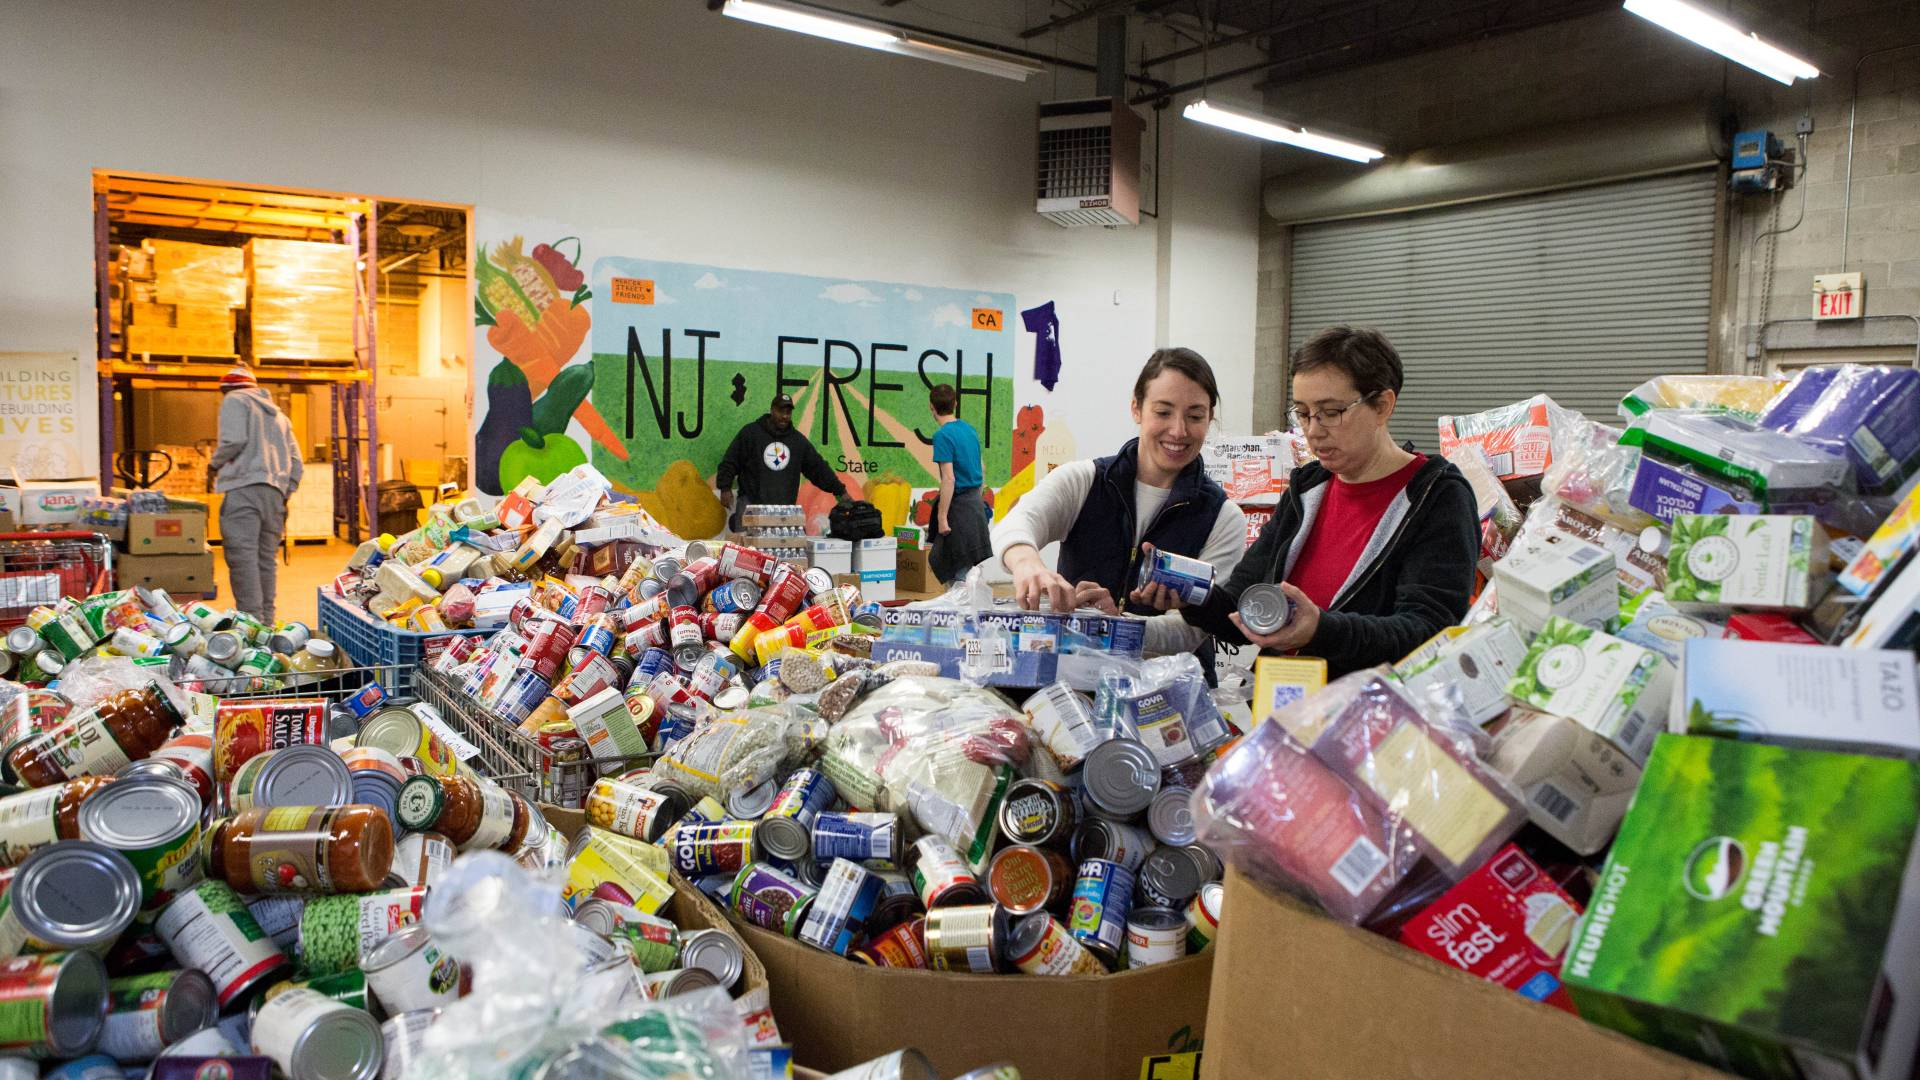 Princeton University staff sort items at Mercer St Friends Food Bank